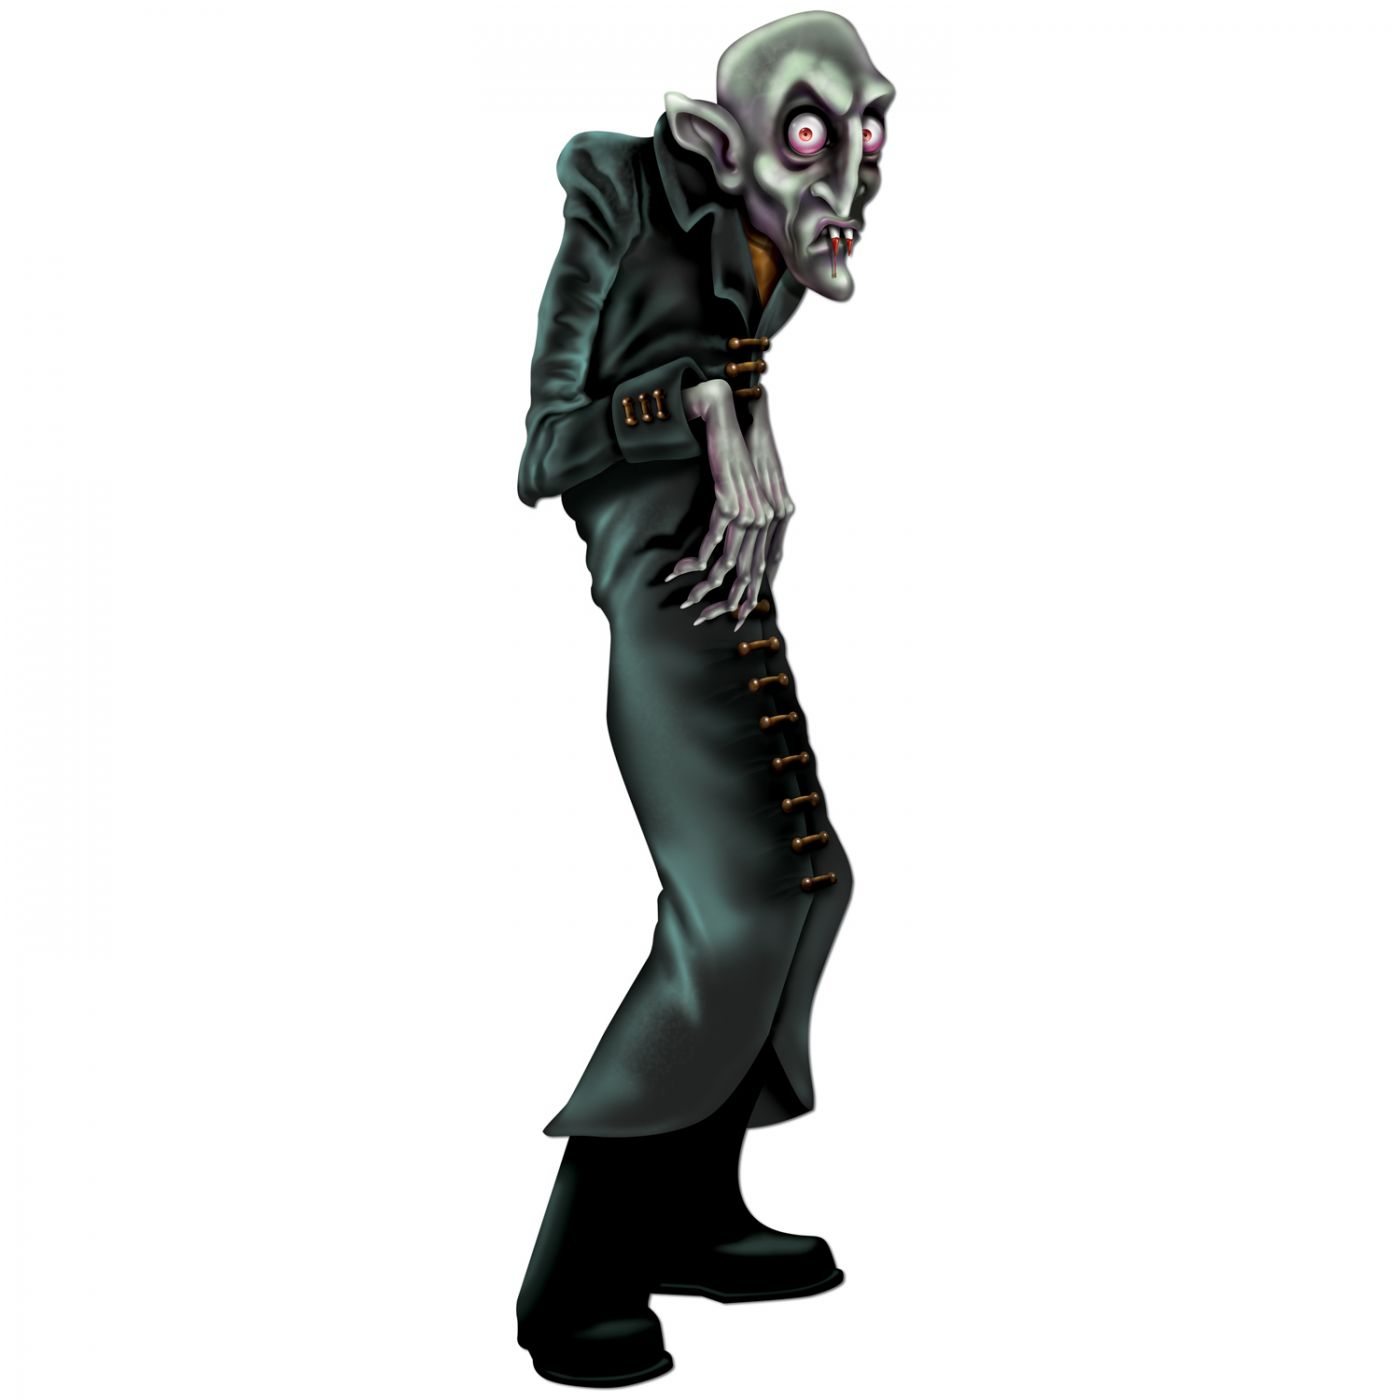 Ghoul Cutout (24) image